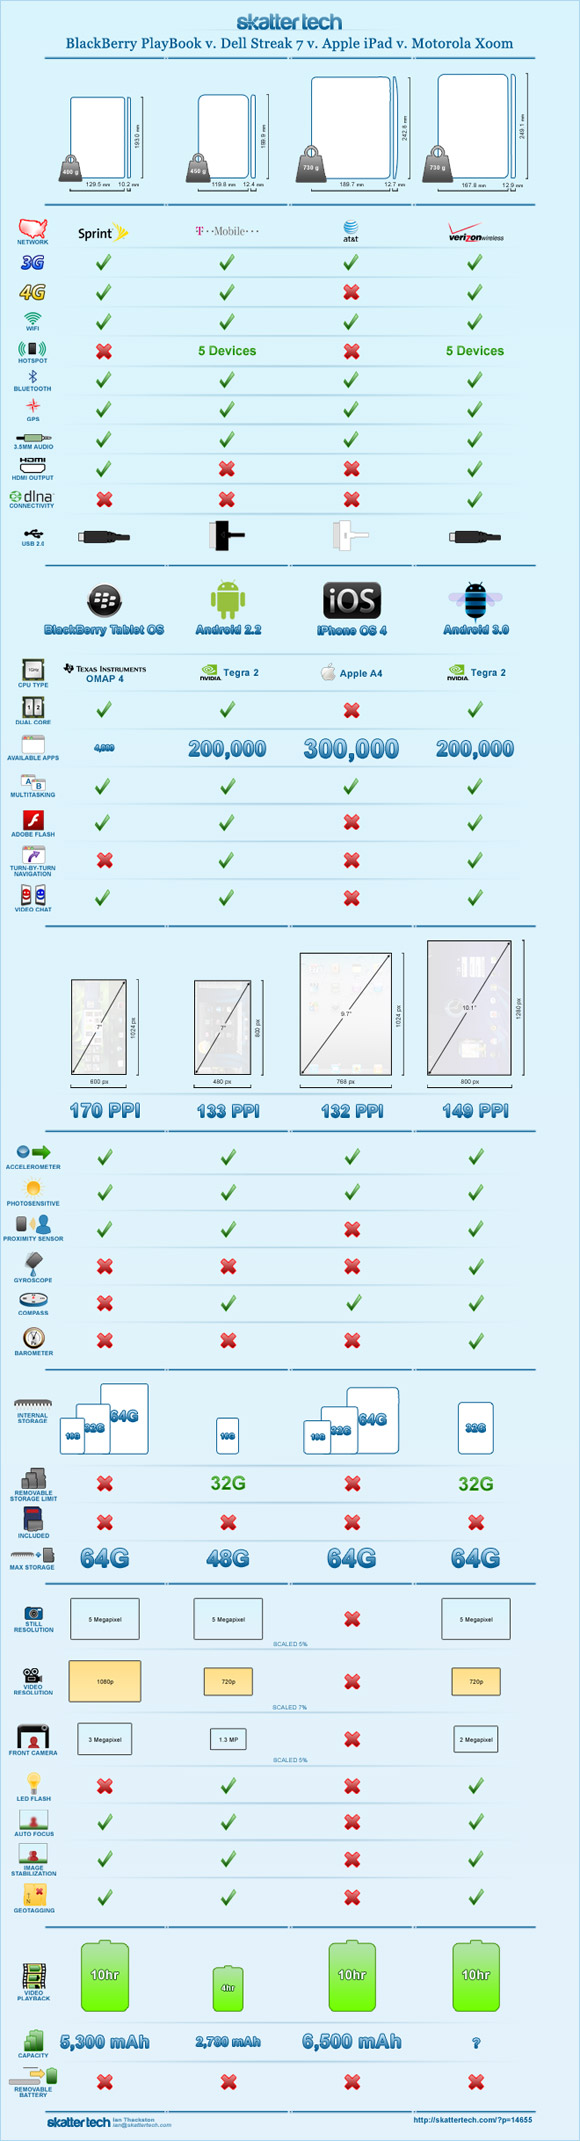 infographic-playbook-vs-streak-vs-ipad-vs-xoom-large1 Infografik: BlackBerry Playbook vs. Dell Streak 7 vs. Apple iPad vs. Motorola XOOM Tablets Technologie